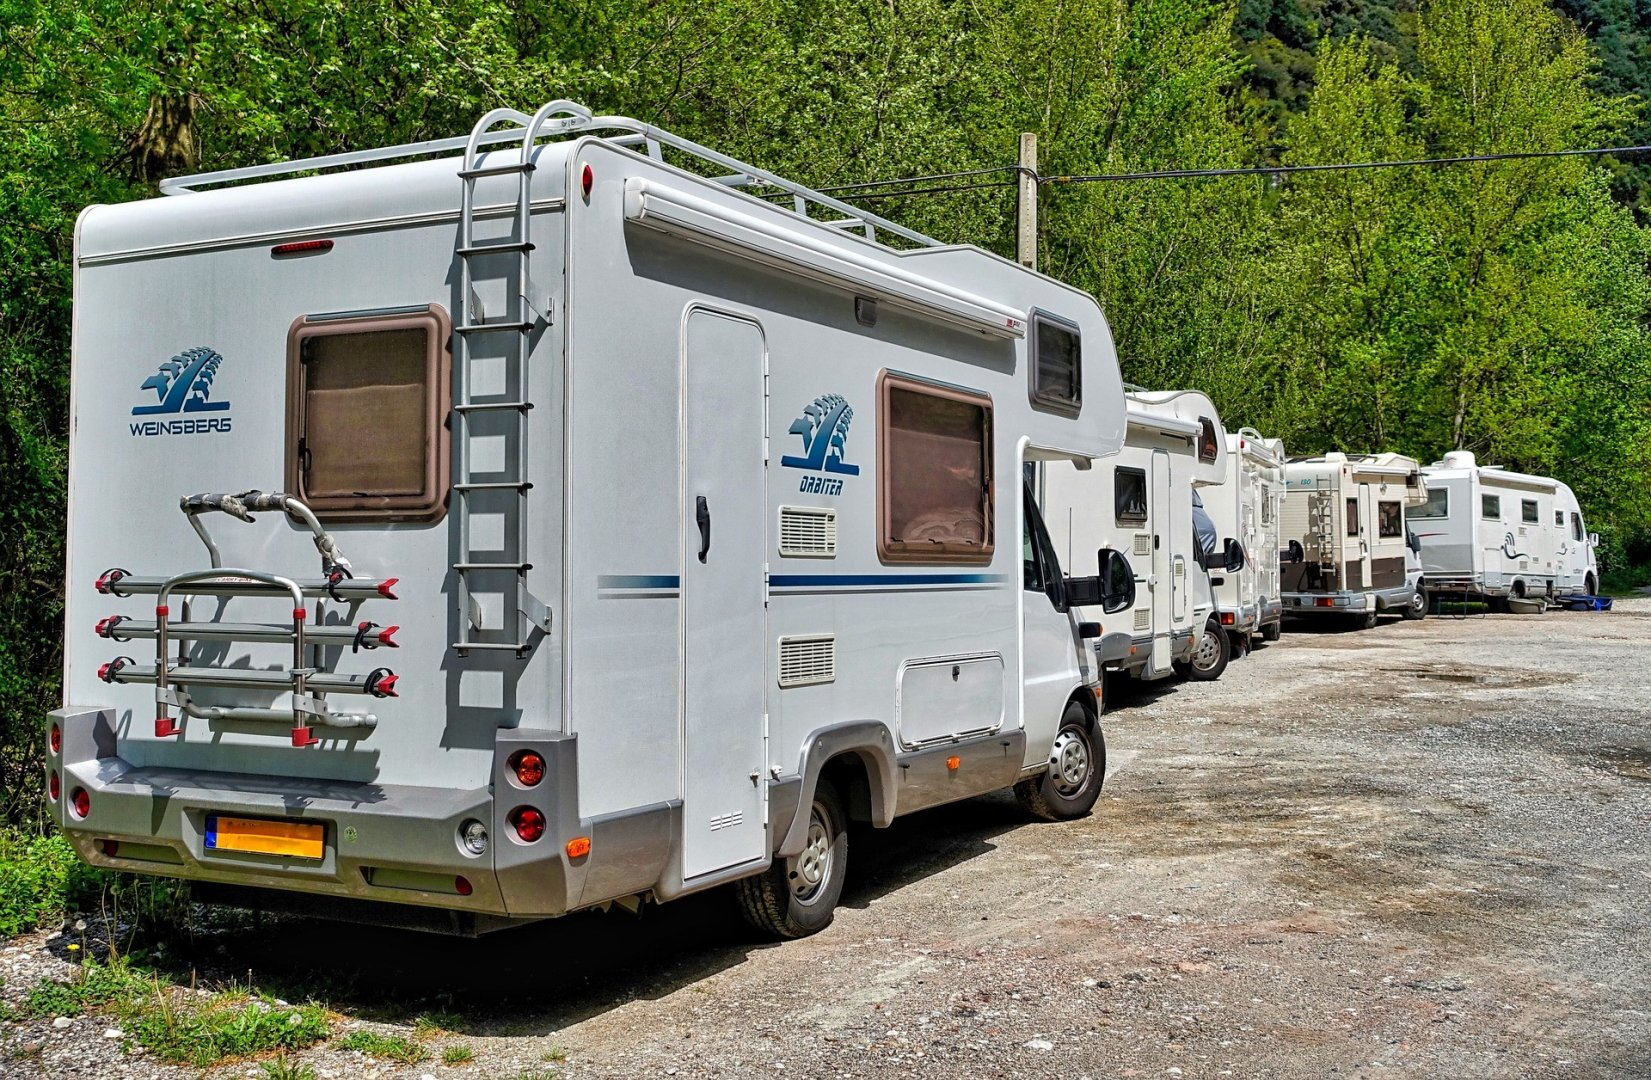 Camping and Caravanning in Poland